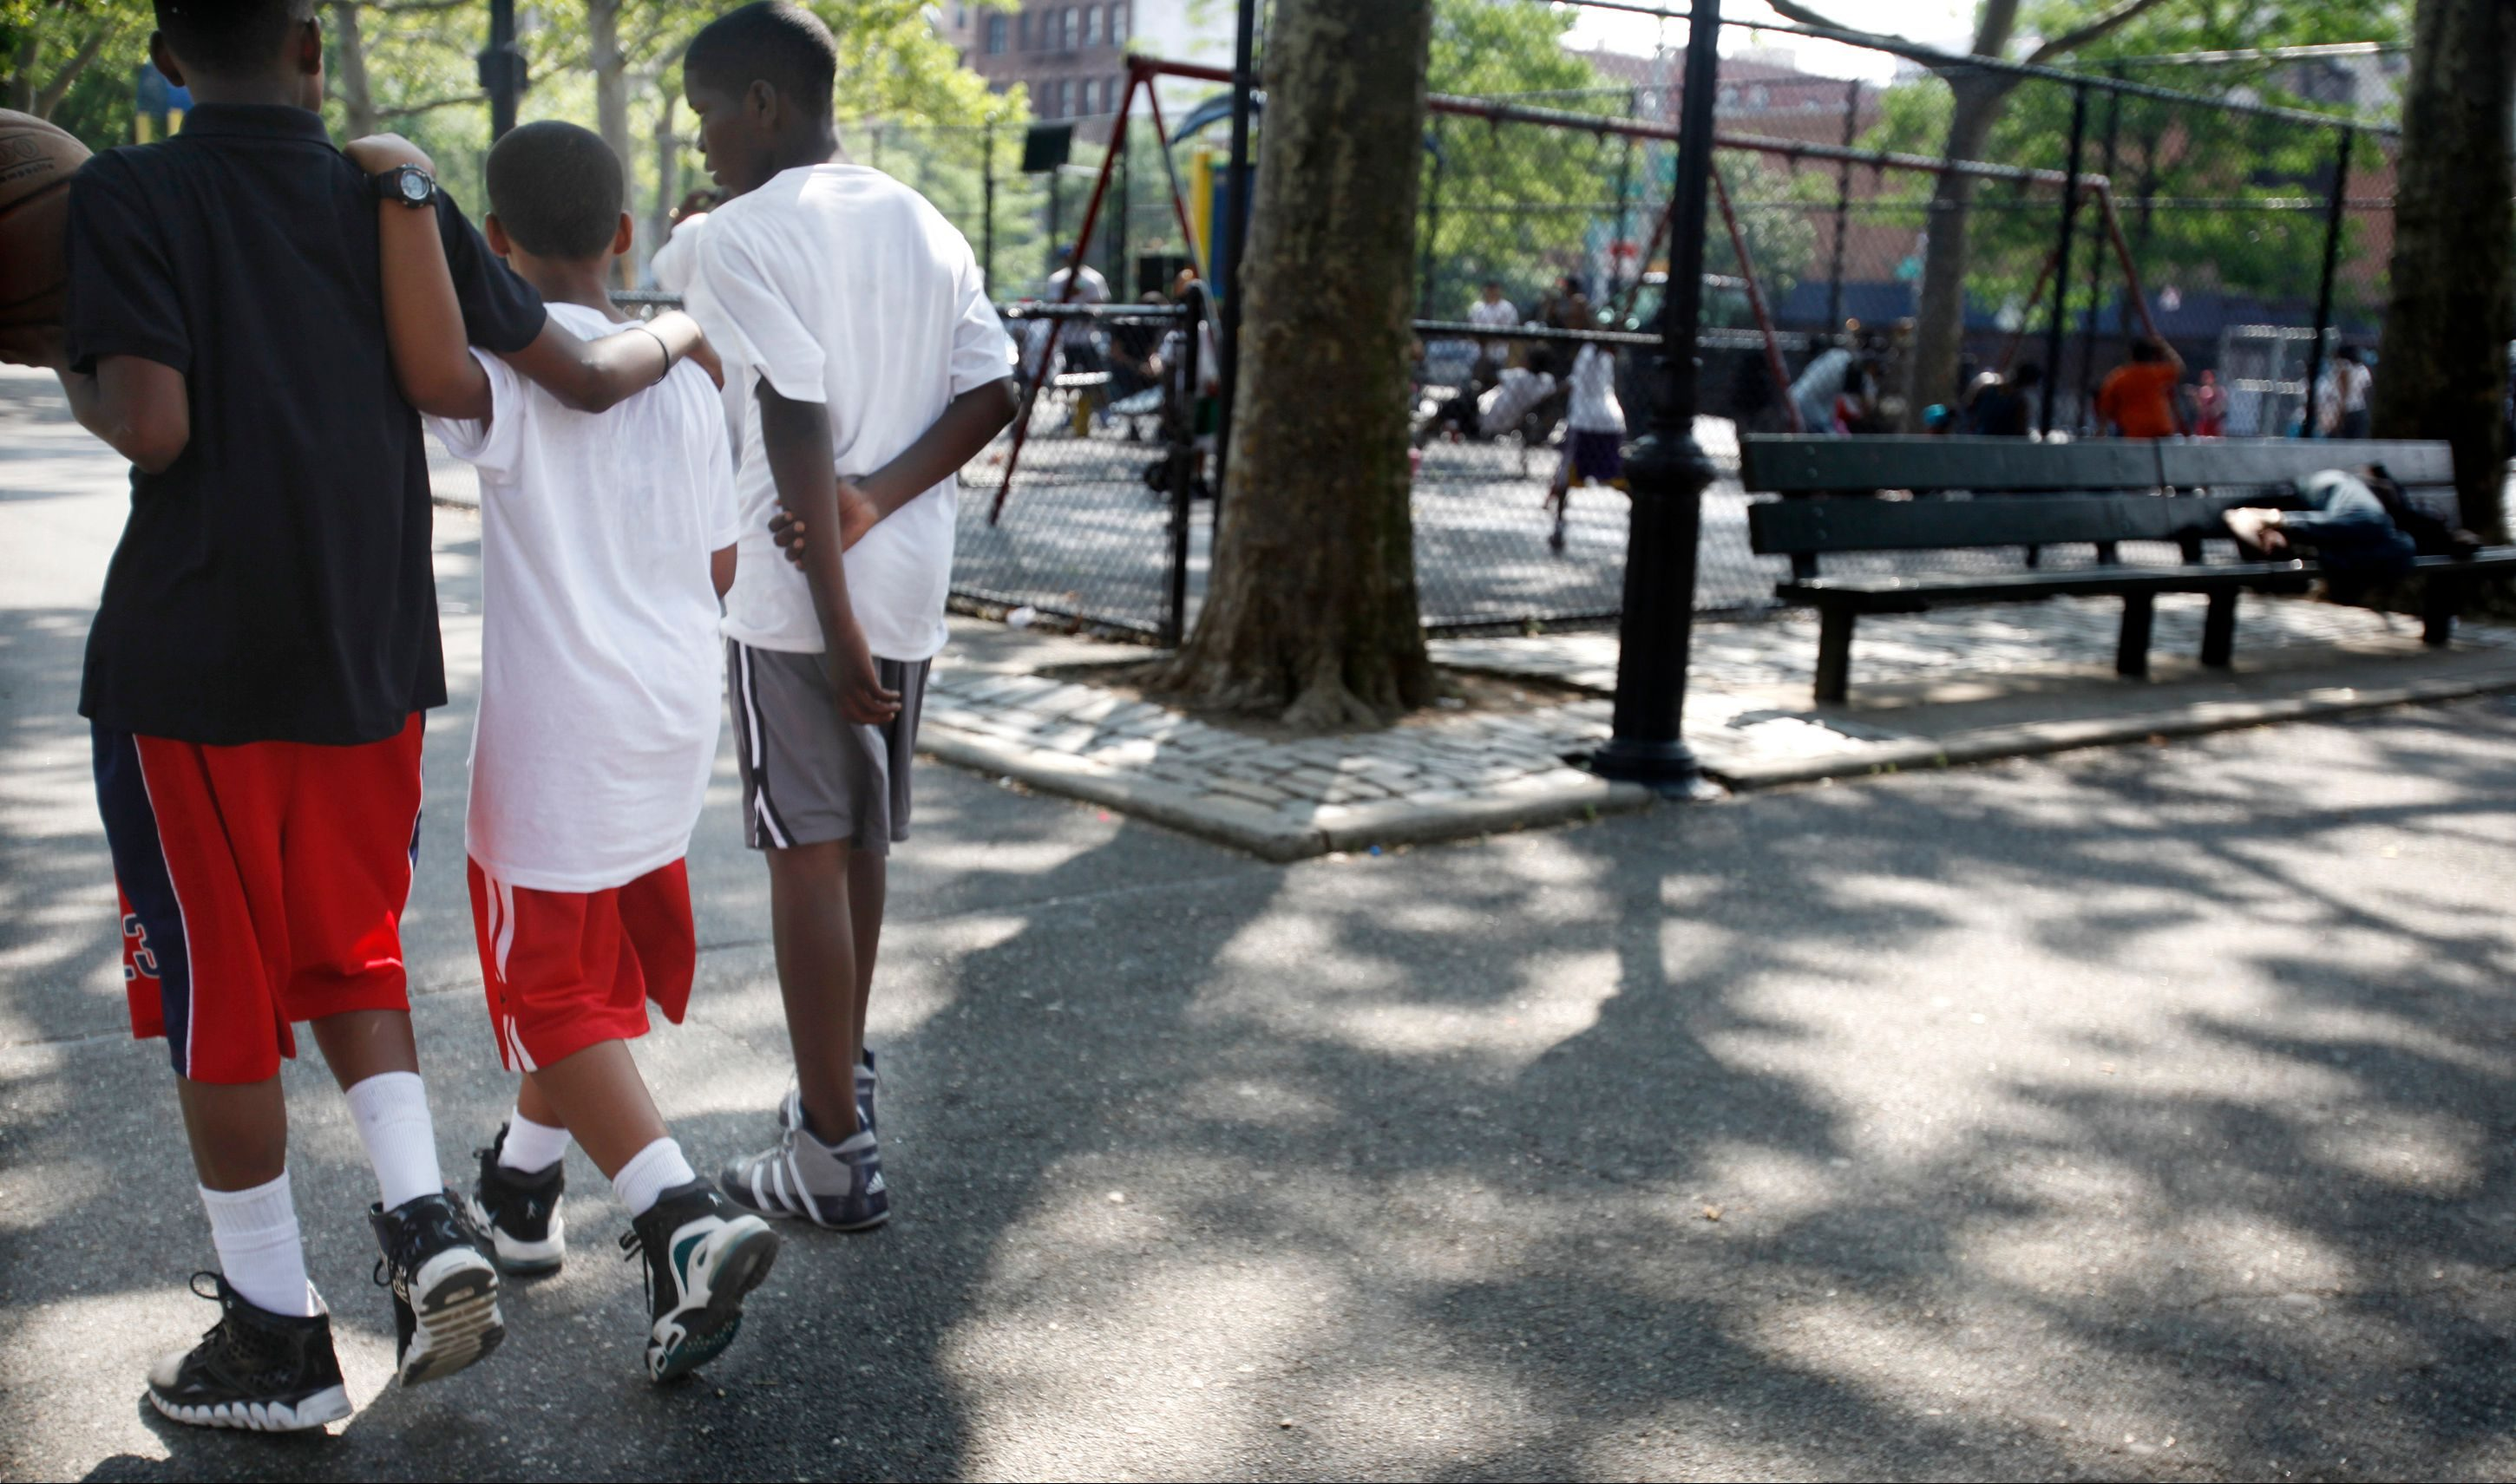 Youngsters leave a basketball court at the Colonel Charles Young playground in Harlem, N.Y., on Tuesday, June 28, 2011